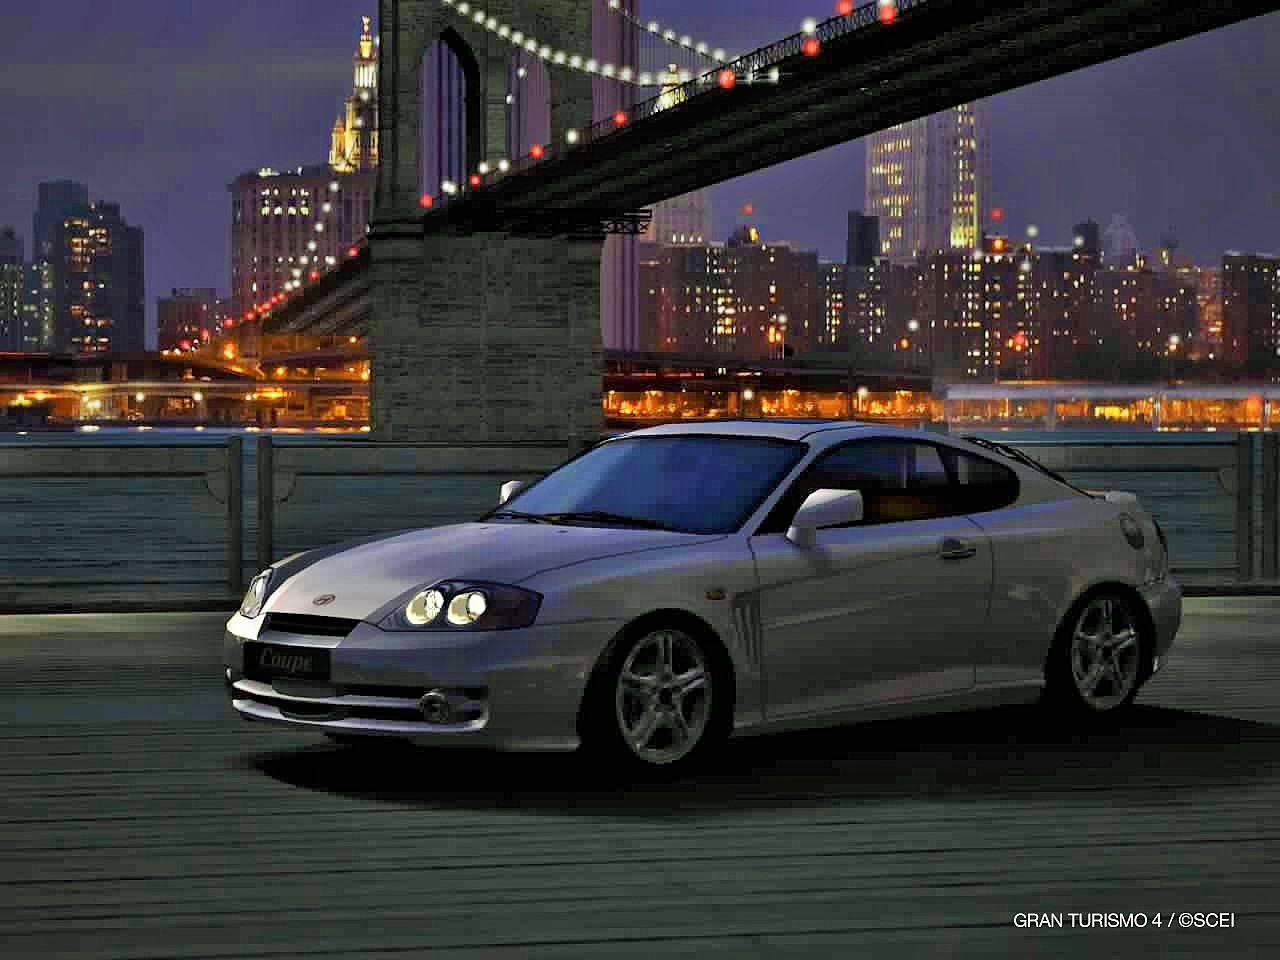 gran turismo photo dump gt4 2001 hyundai coupe fx. Black Bedroom Furniture Sets. Home Design Ideas